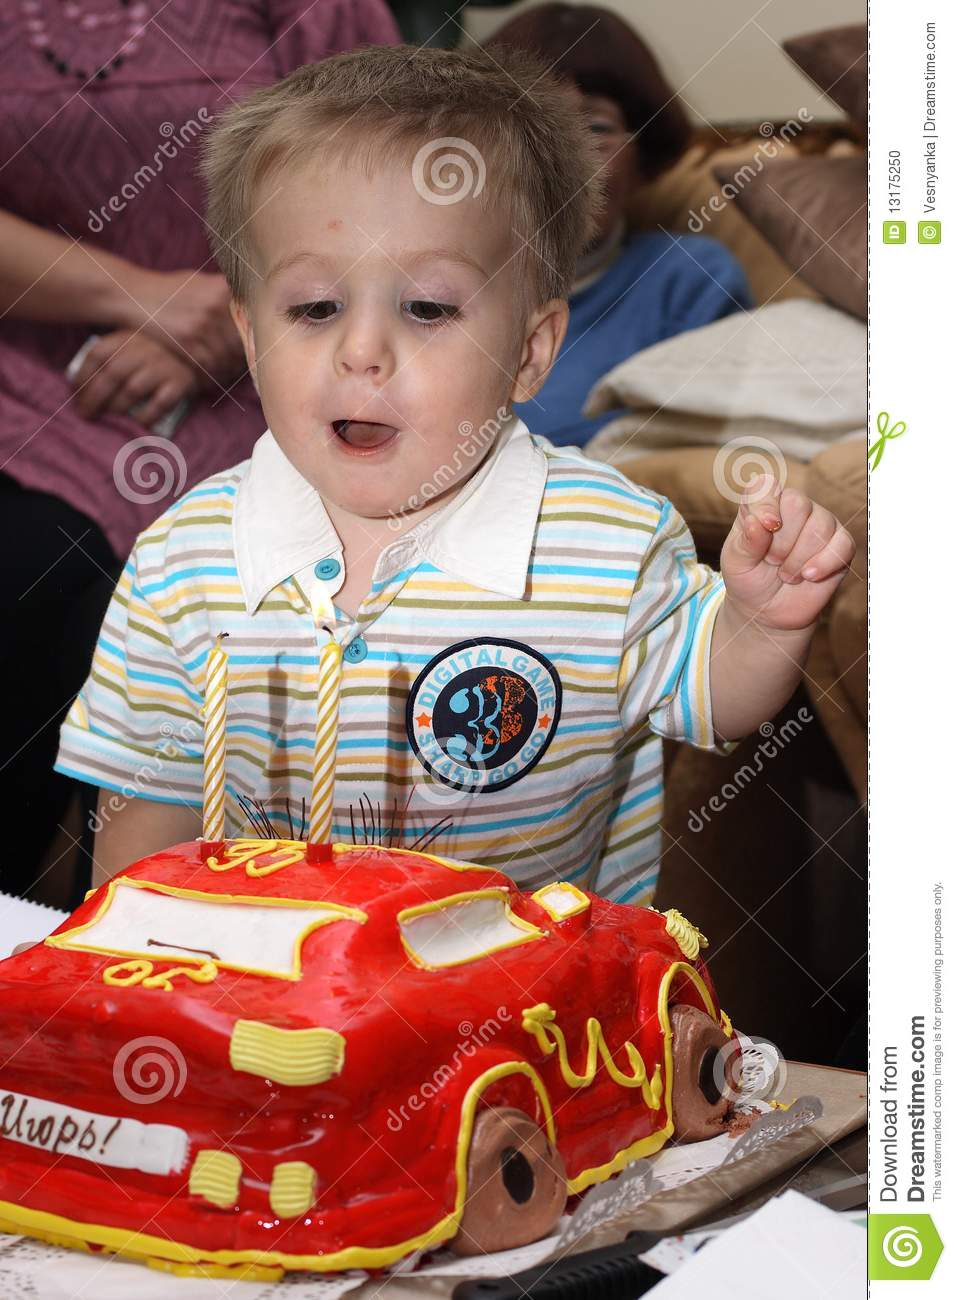 Toddler 2 Years Old Birthday Baby Blowing Out The Candles Stock Photo Image Of Face